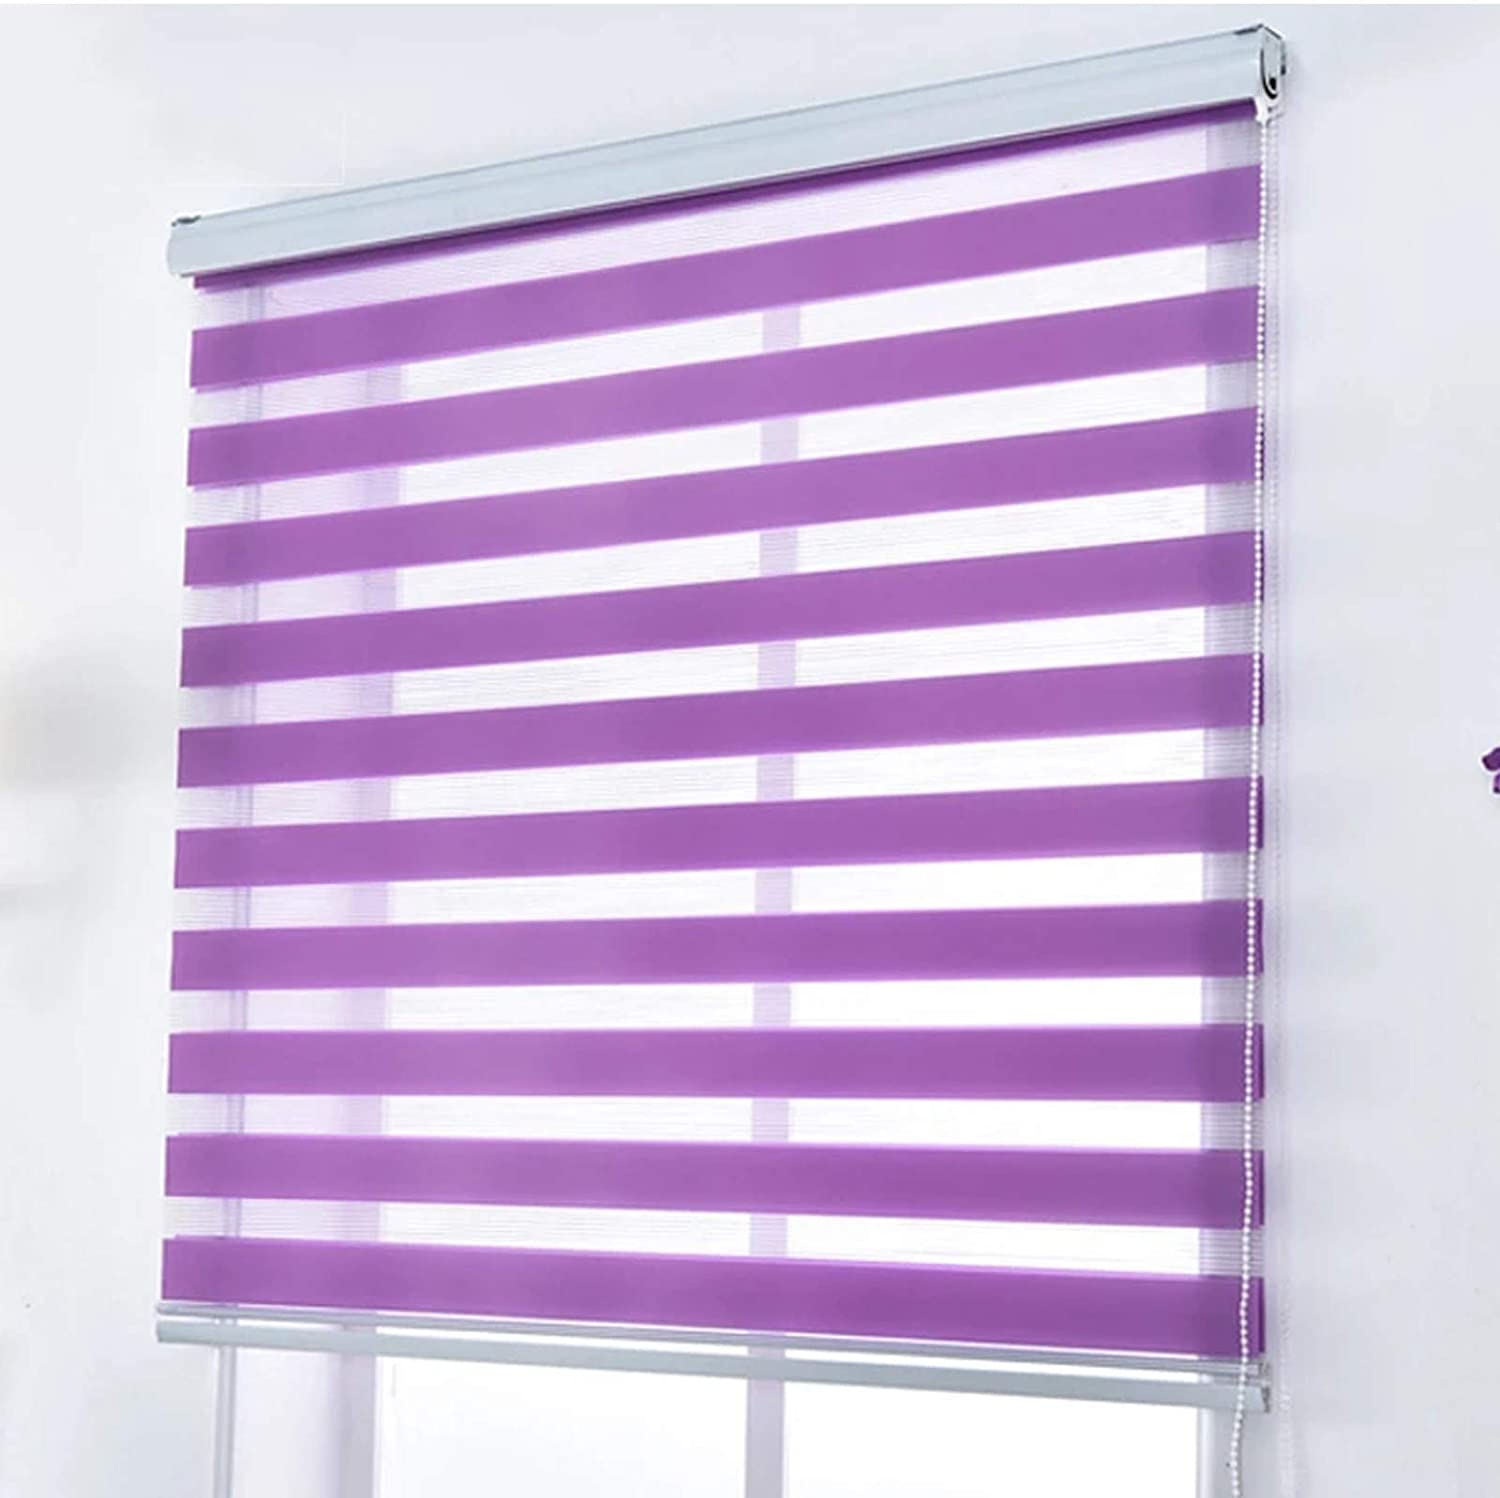 EEUK Roller Window Max 61% OFF Shades Blackout Ligh ! Super beauty product restock quality top! Dual Layer Zebra